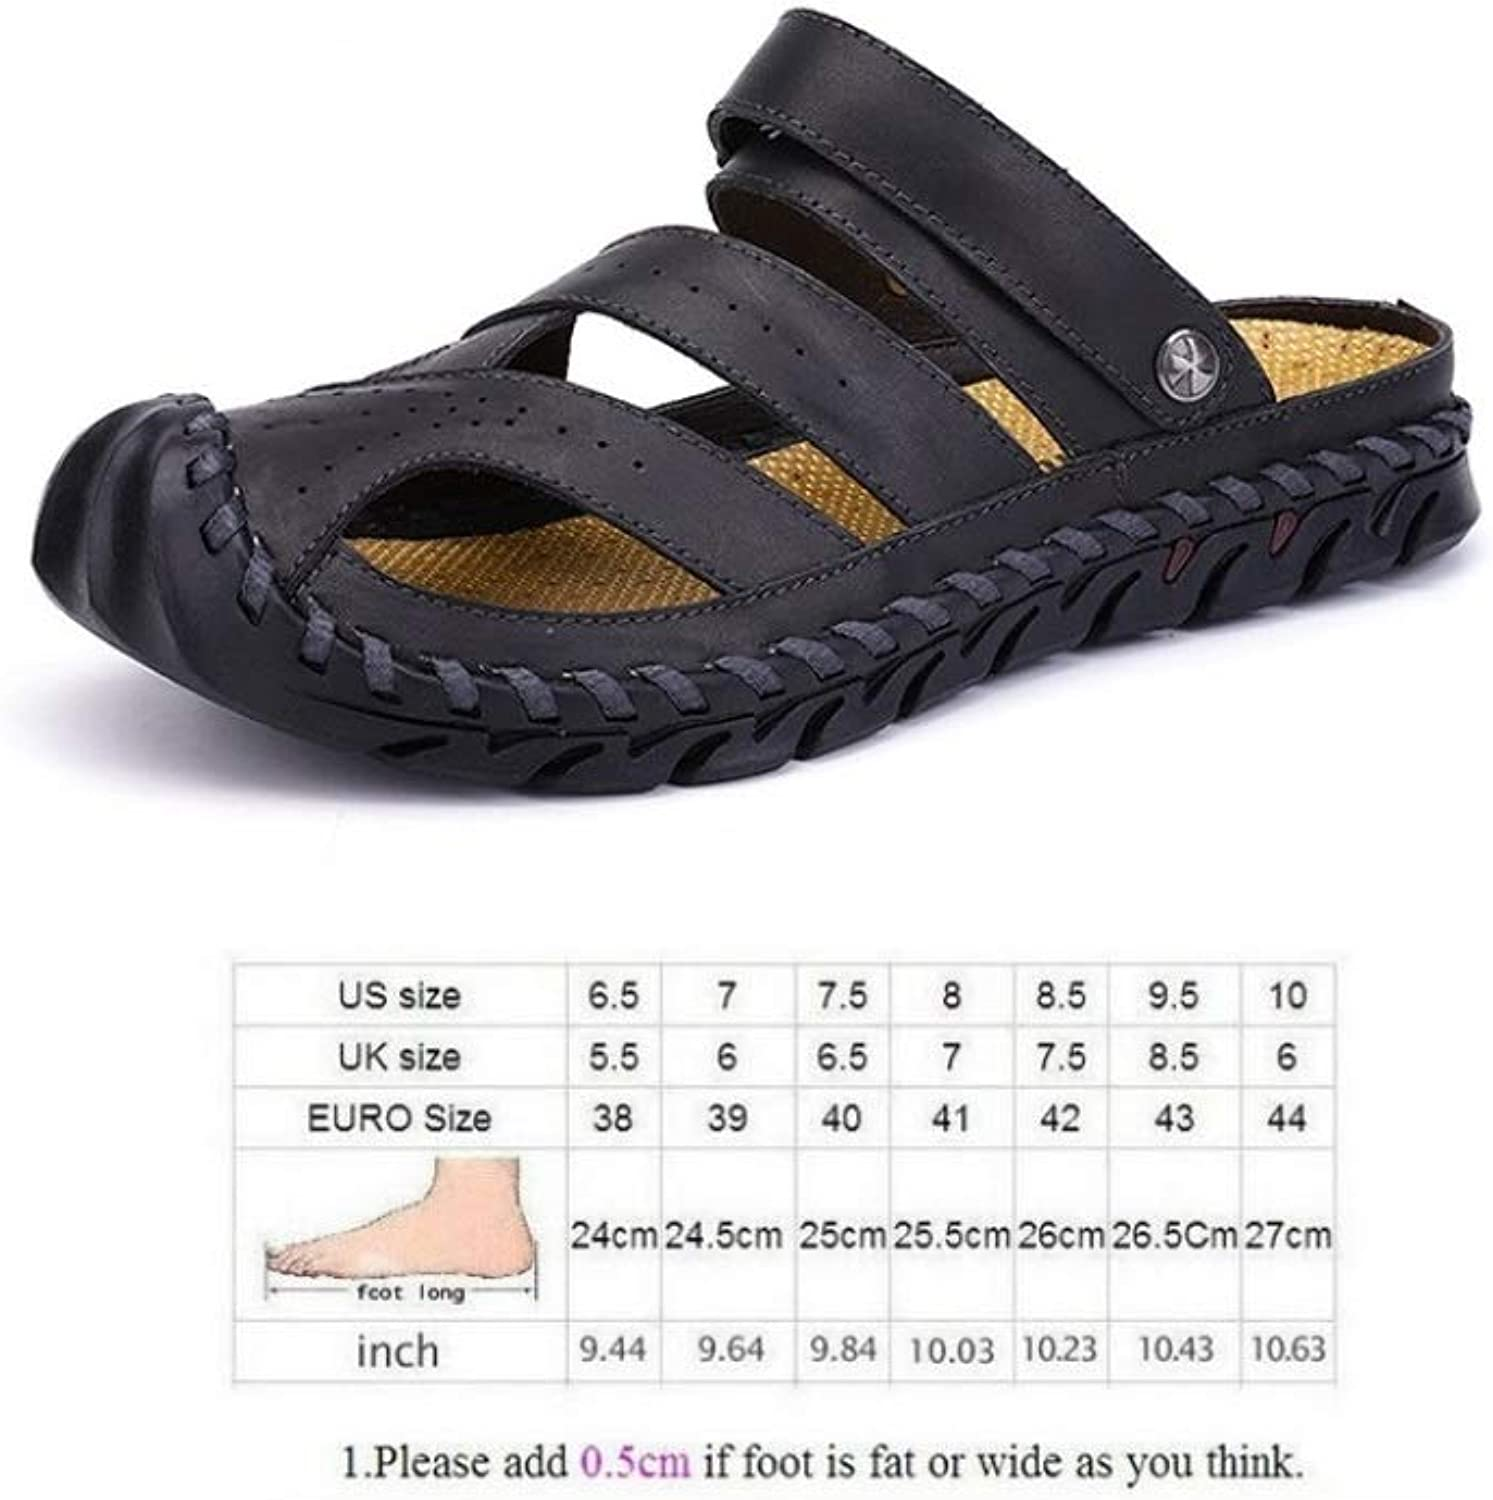 WJP Men's Sandals - Summer Durable Leather Sandals, Baotou Anti-Collision Toe, Casual Beach Slippers, Two Ways of Wearing B   41